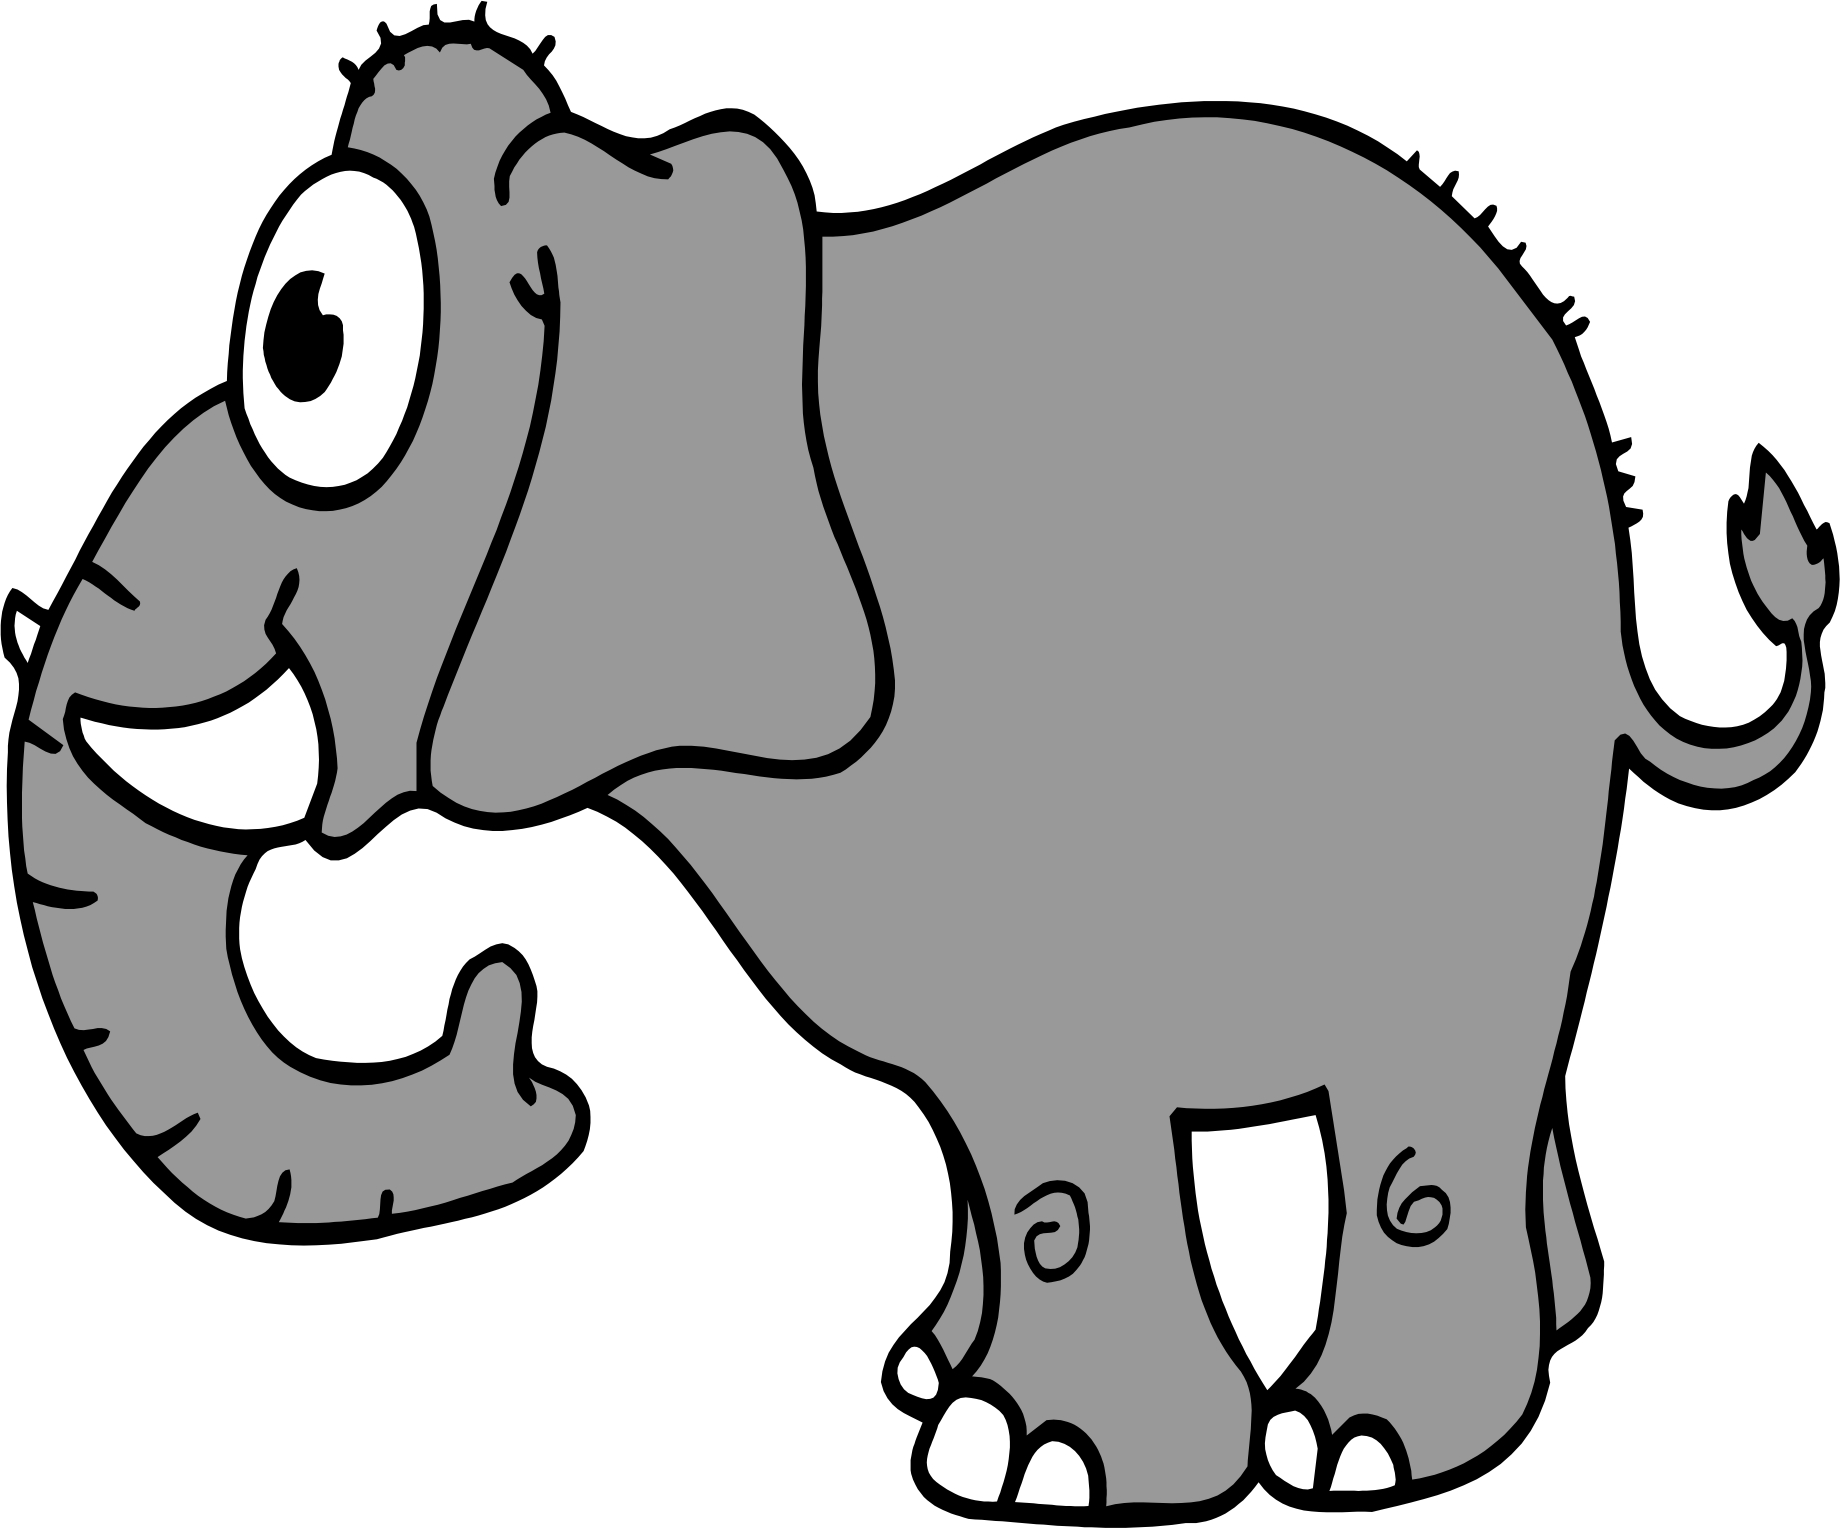 cartoon elephant wallpaper - photo #37